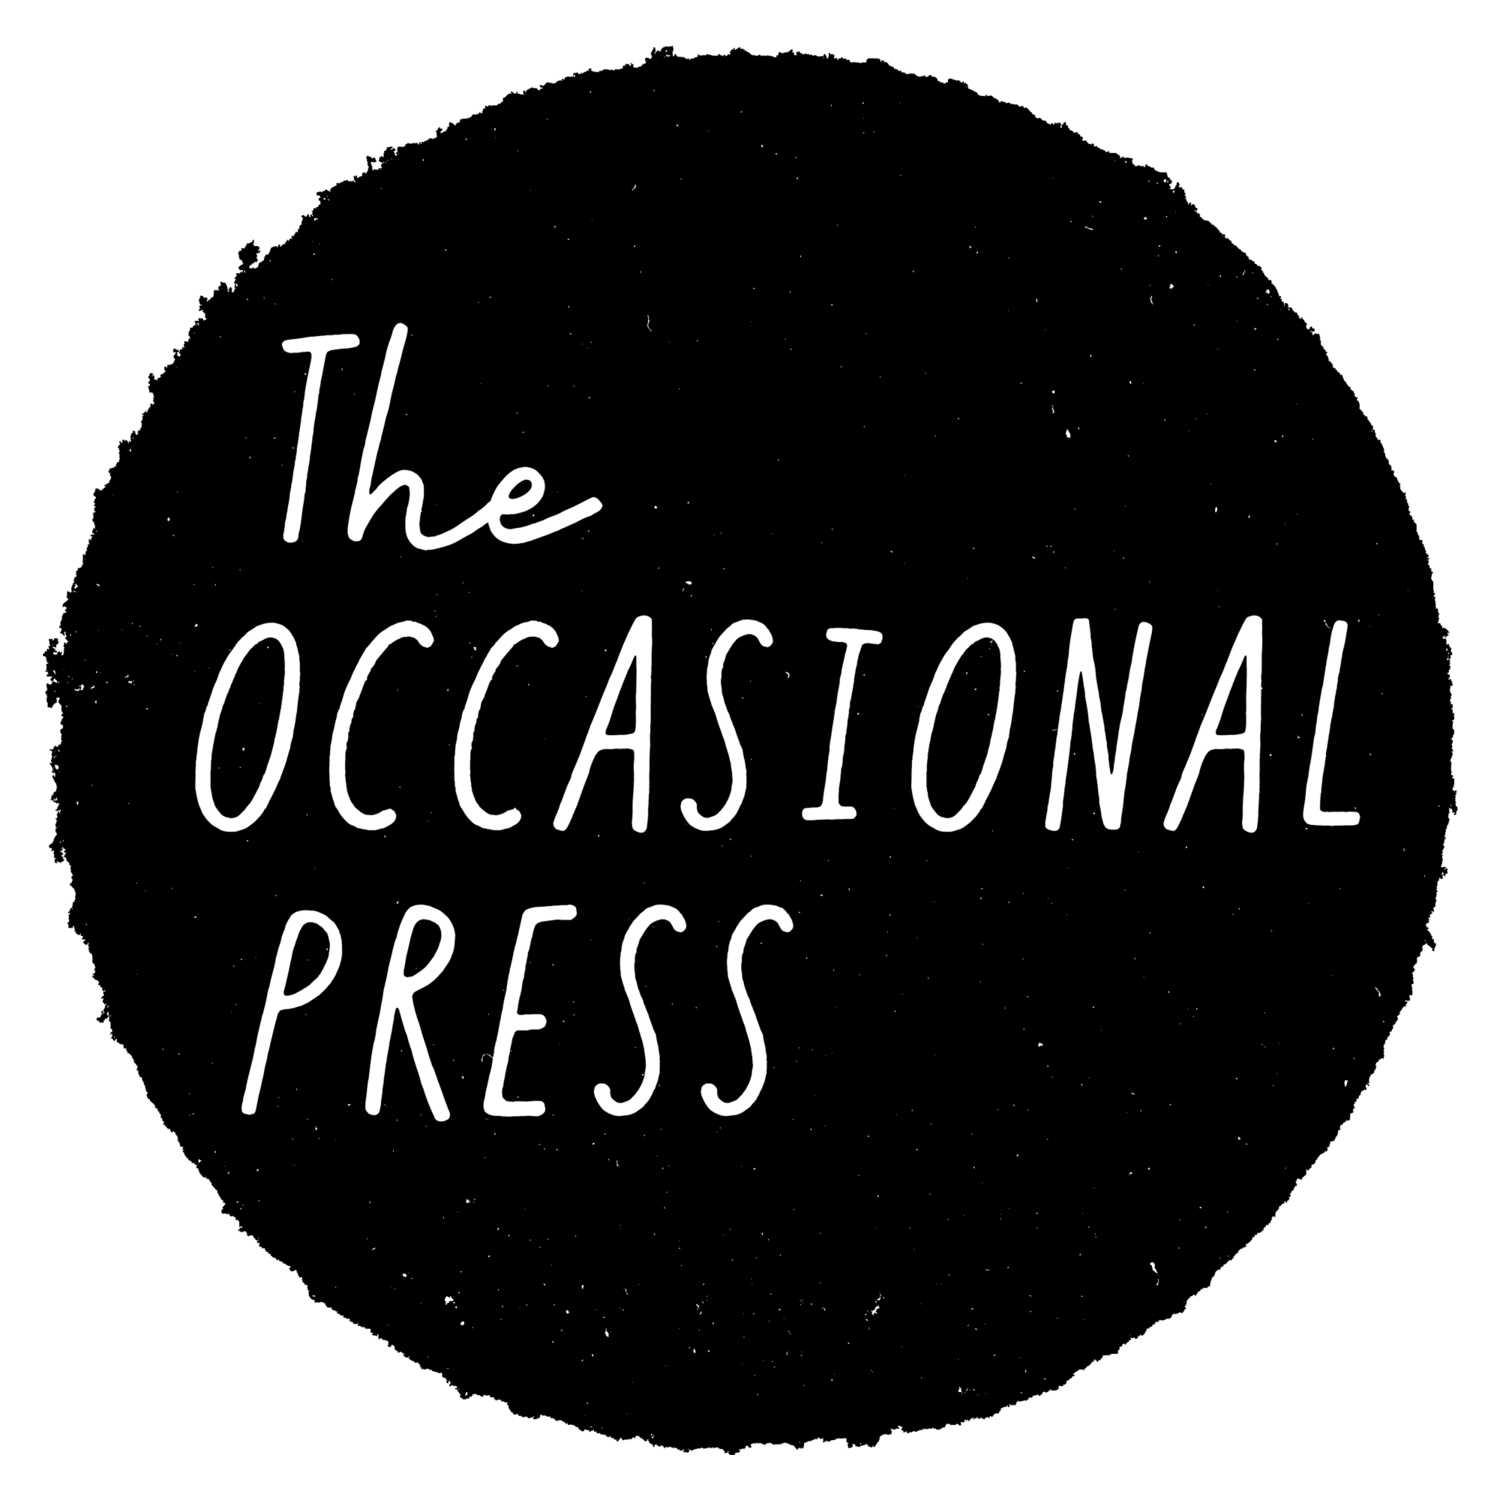 The Occasional Press